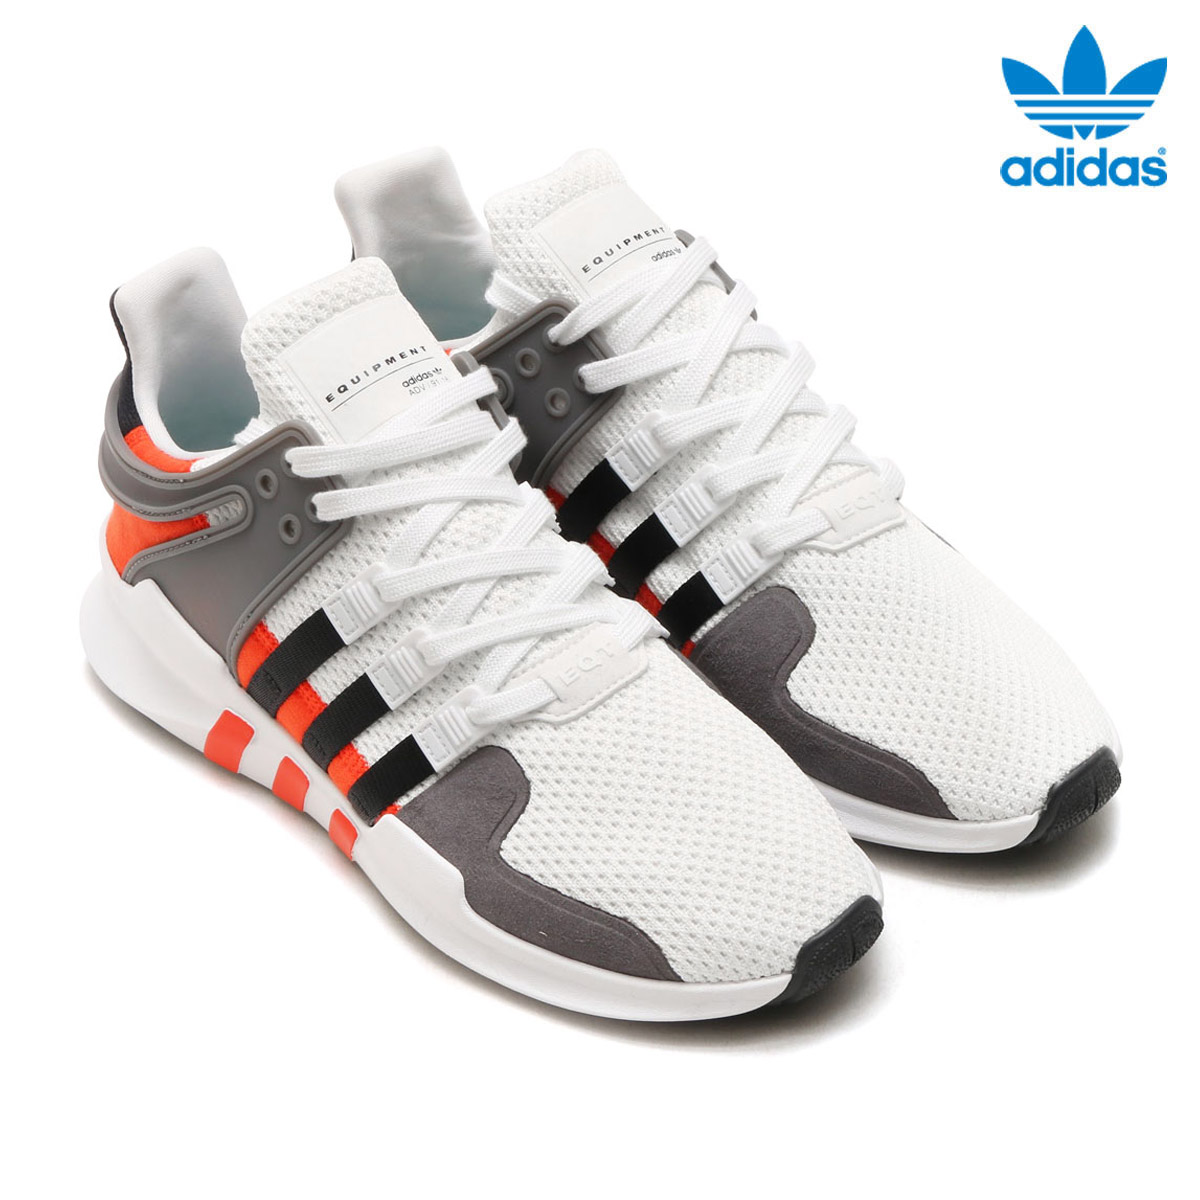 Adidas Originals EQT Support ADV VitSvartOrange | BY9584